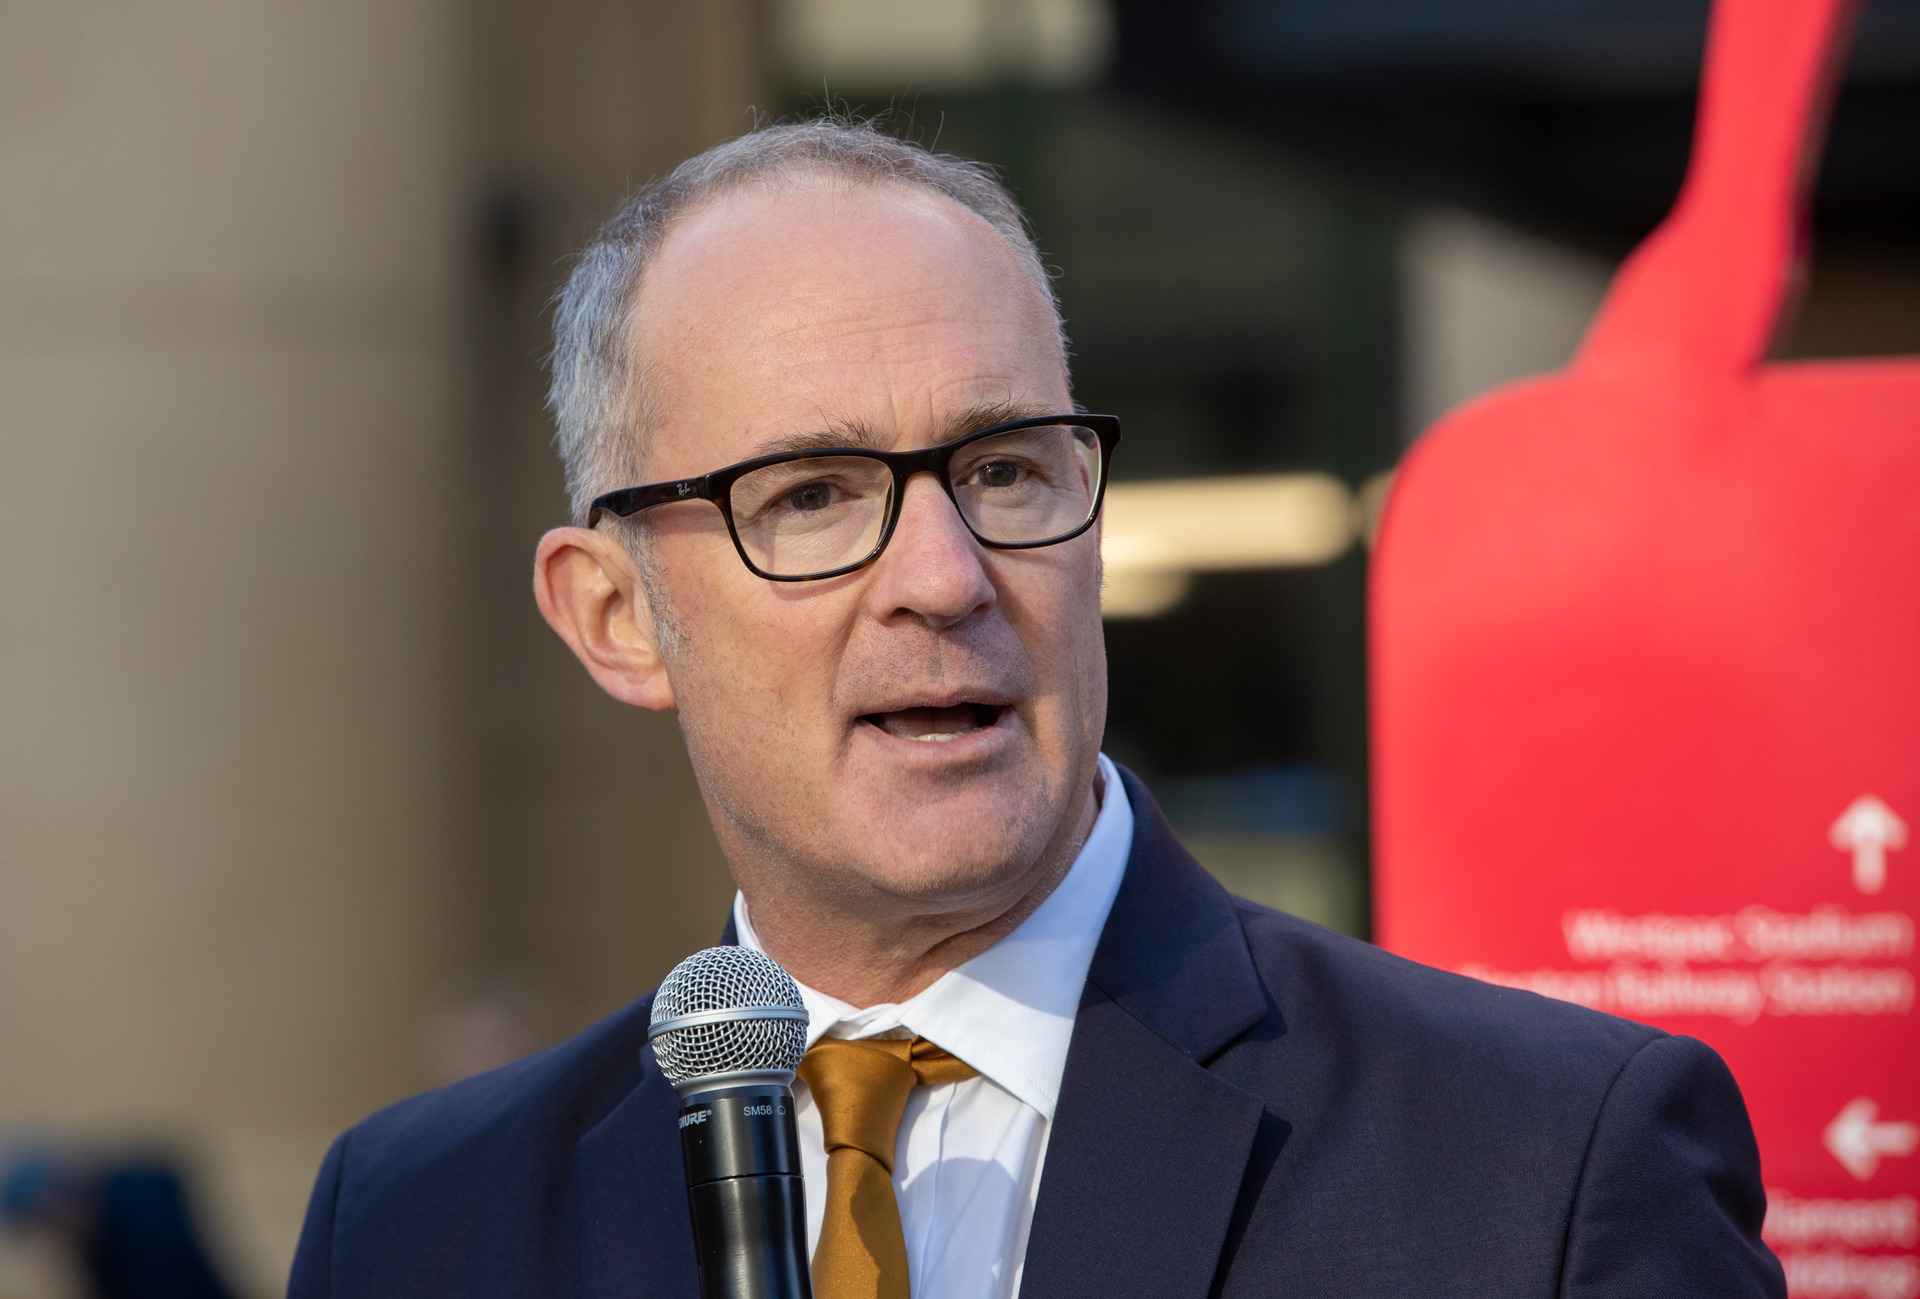 Transport Minister Phil Twyford clears out nearly entire NZTA board